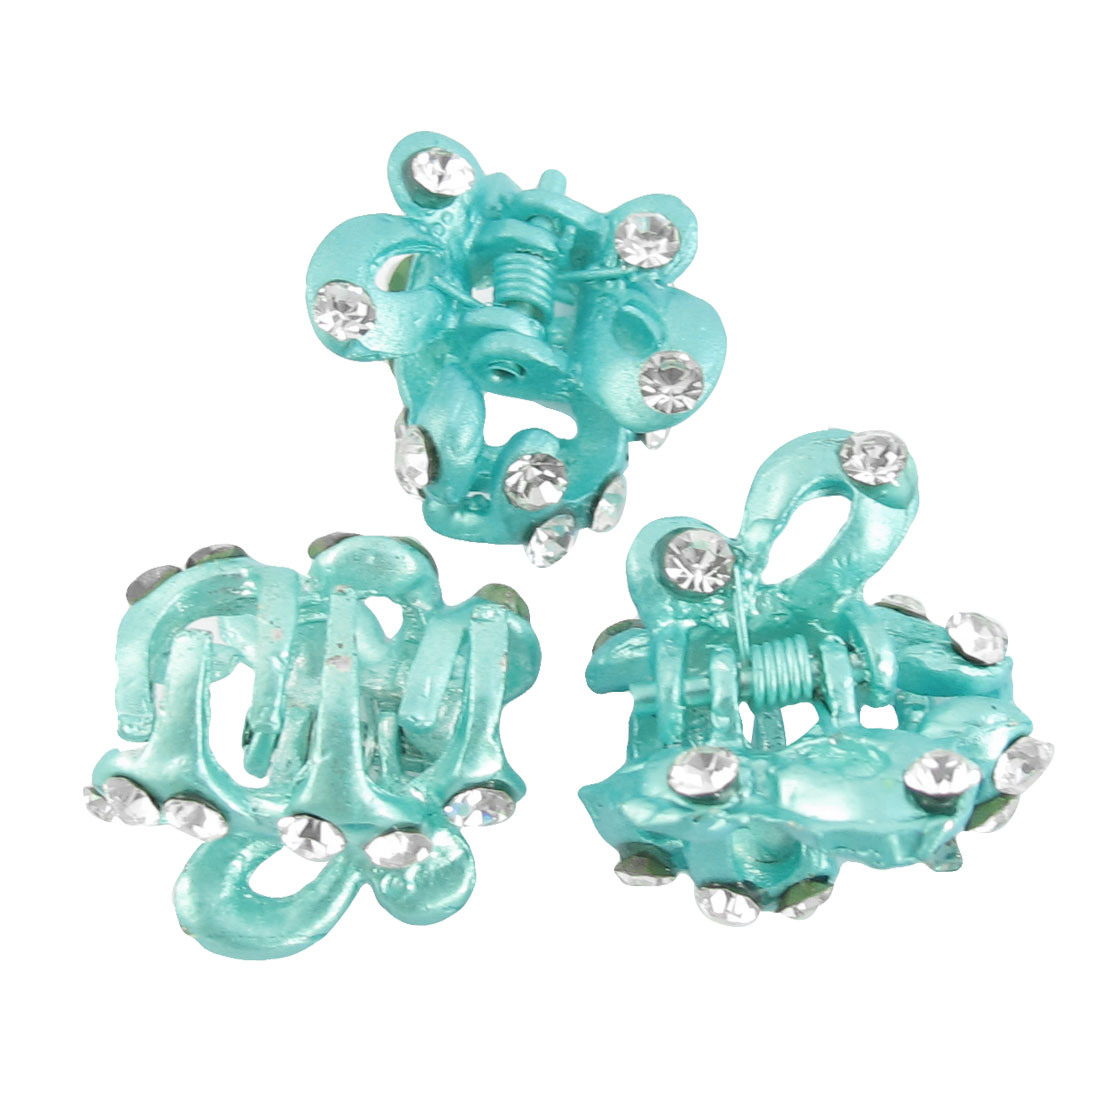 Ladies Butterfly Rhinestone Inlaid Metal Hair Claw Clip Aqua 3 Pcs